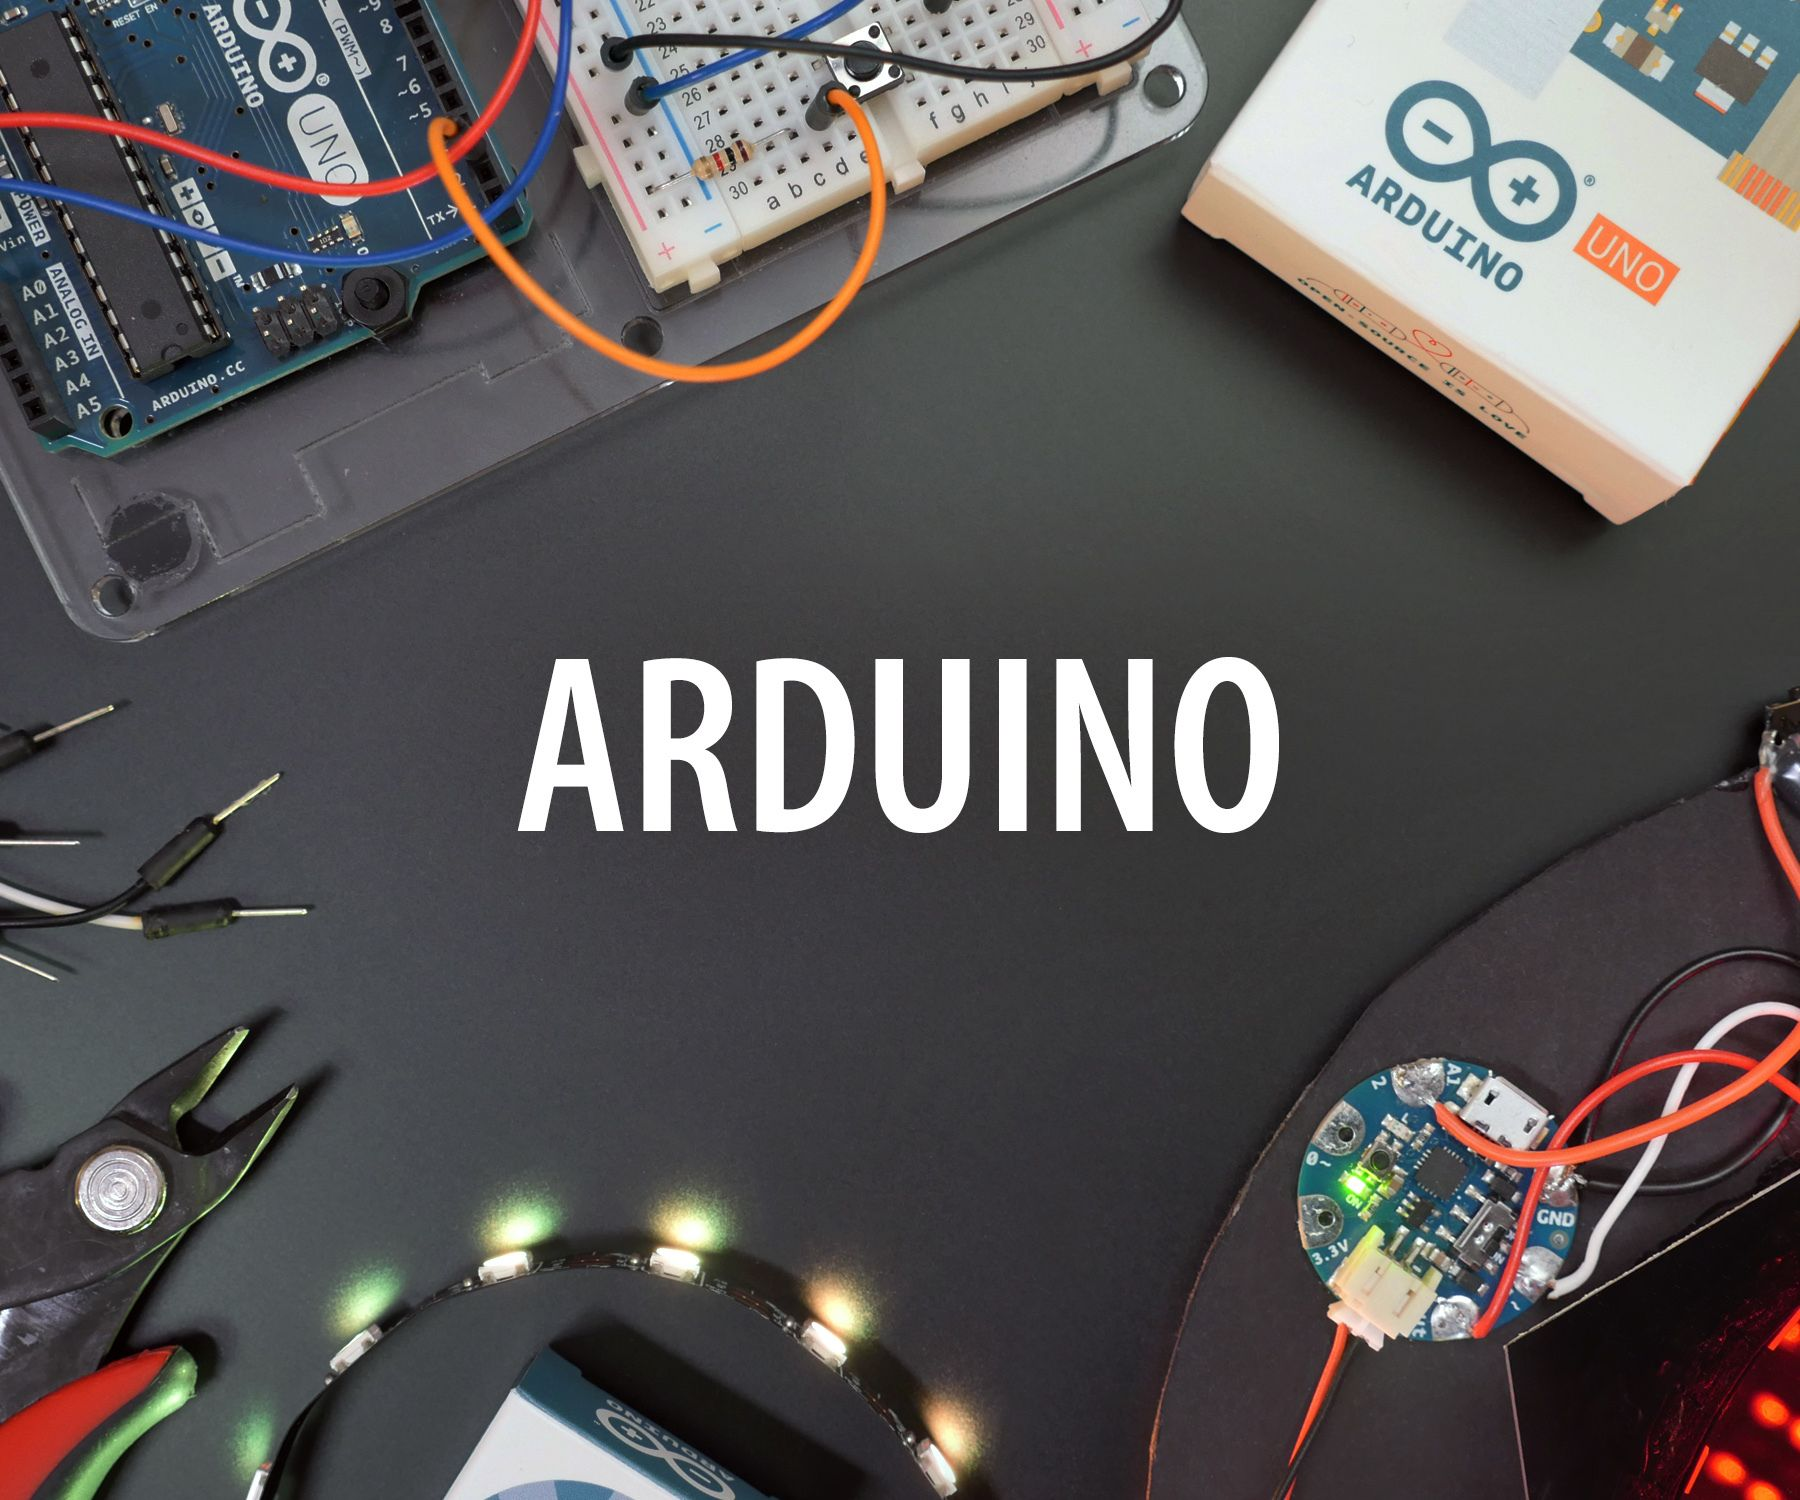 Arduino Class | Pinterest | Fun hobbies, Arduino and Arduino projects